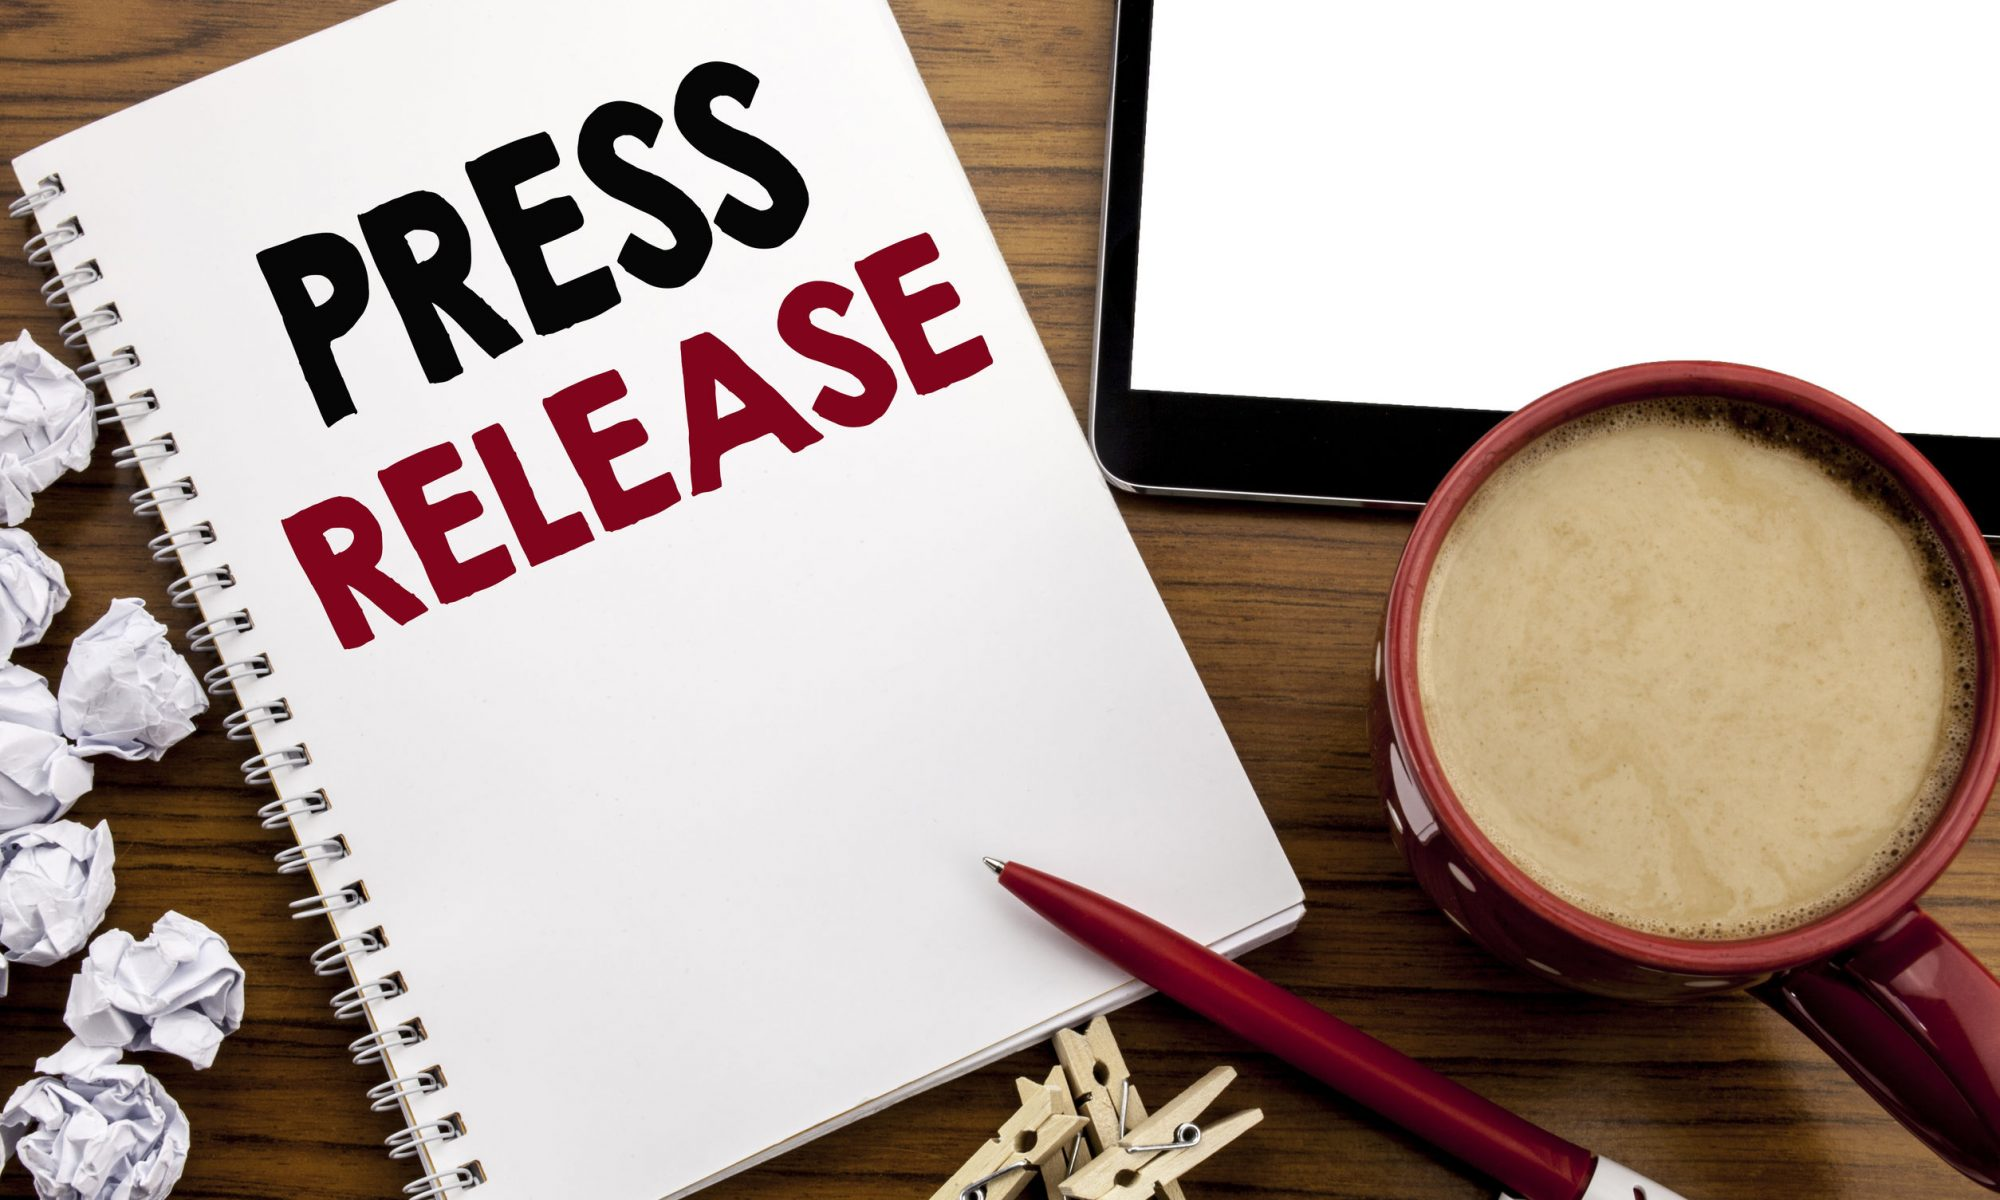 cheap press release | PR Writing Services